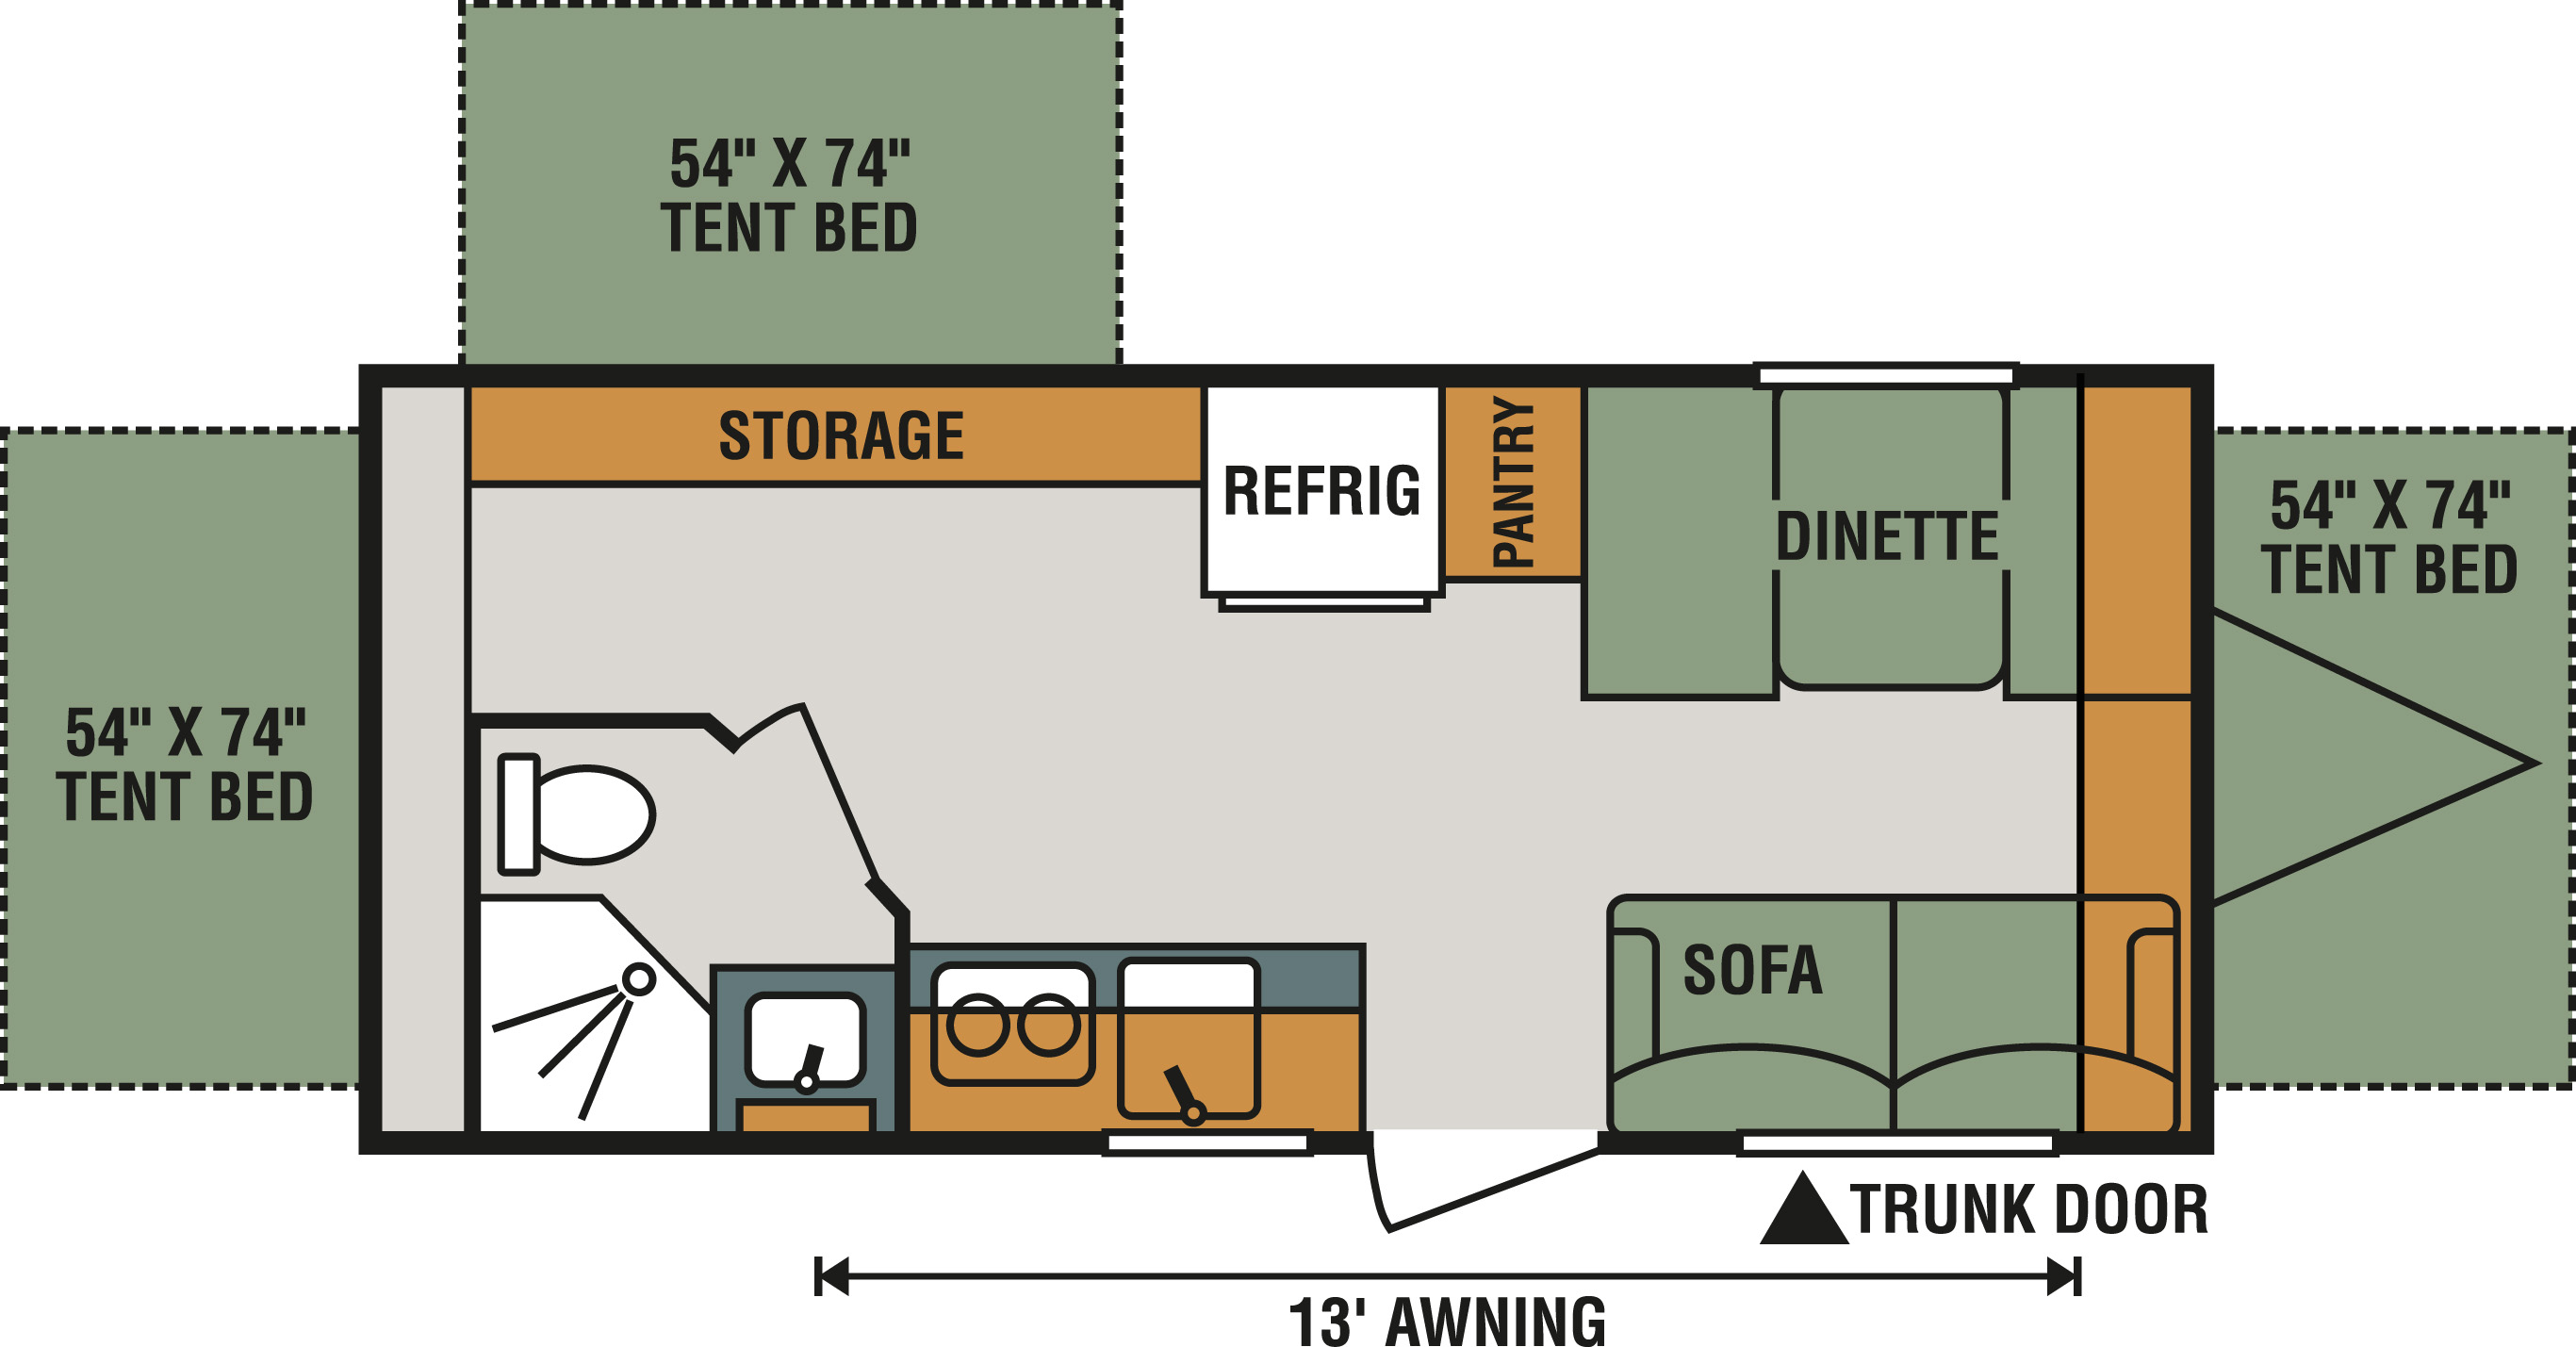 Kz Rv Wiring Diagram : Kz rv wiring diagram image collections